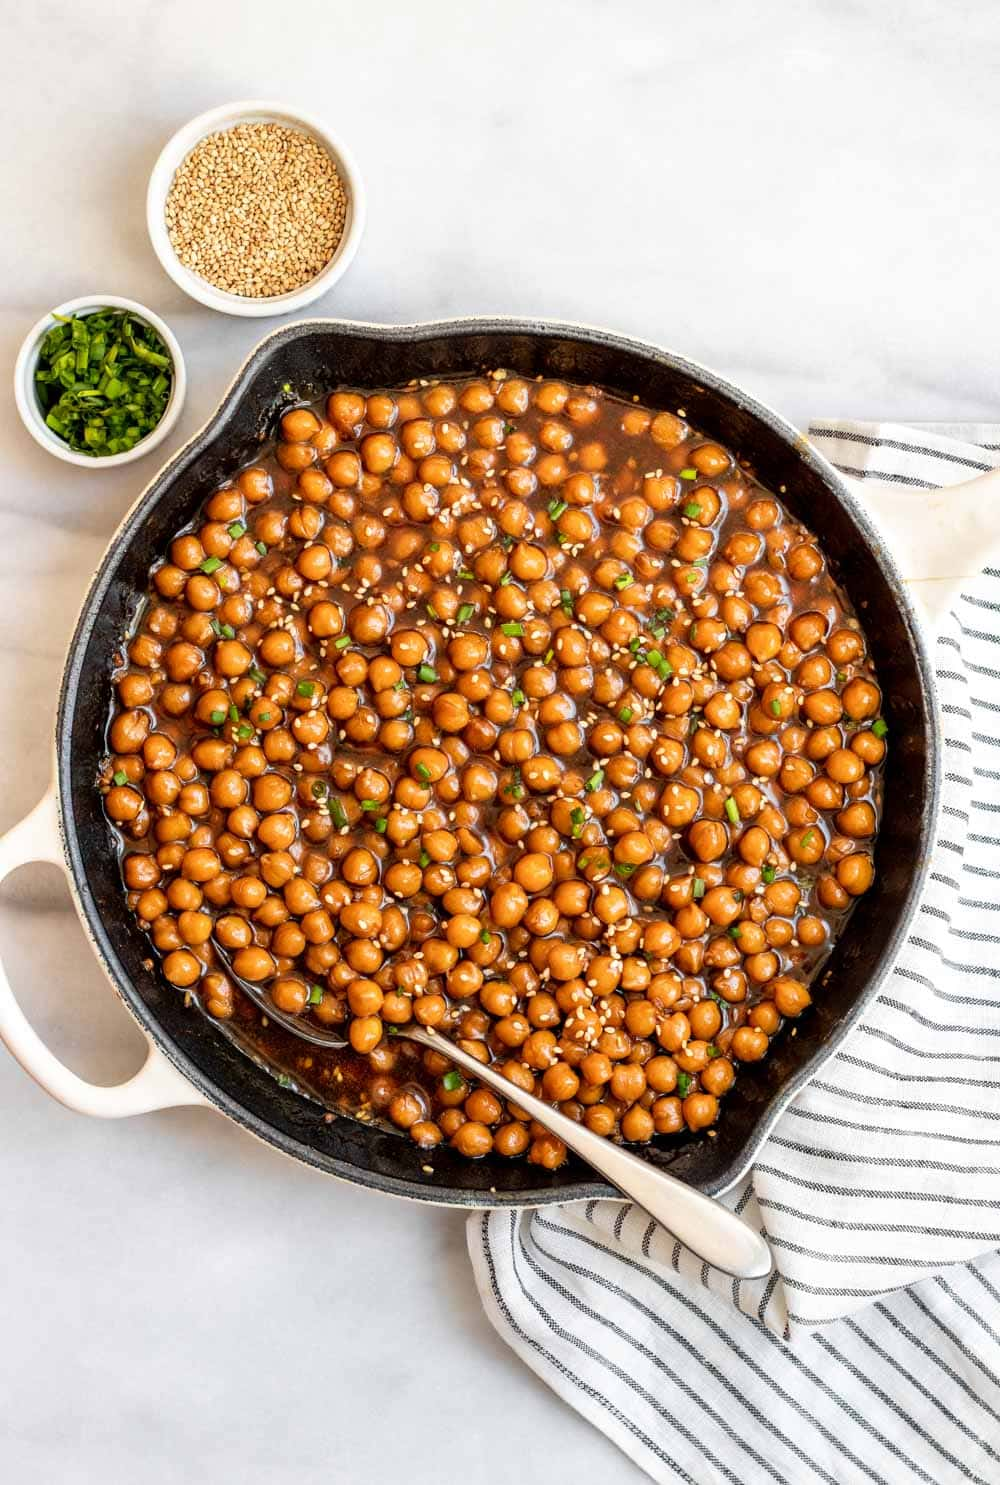 Easy chickpea recipe with chives and sesame seeds on top.